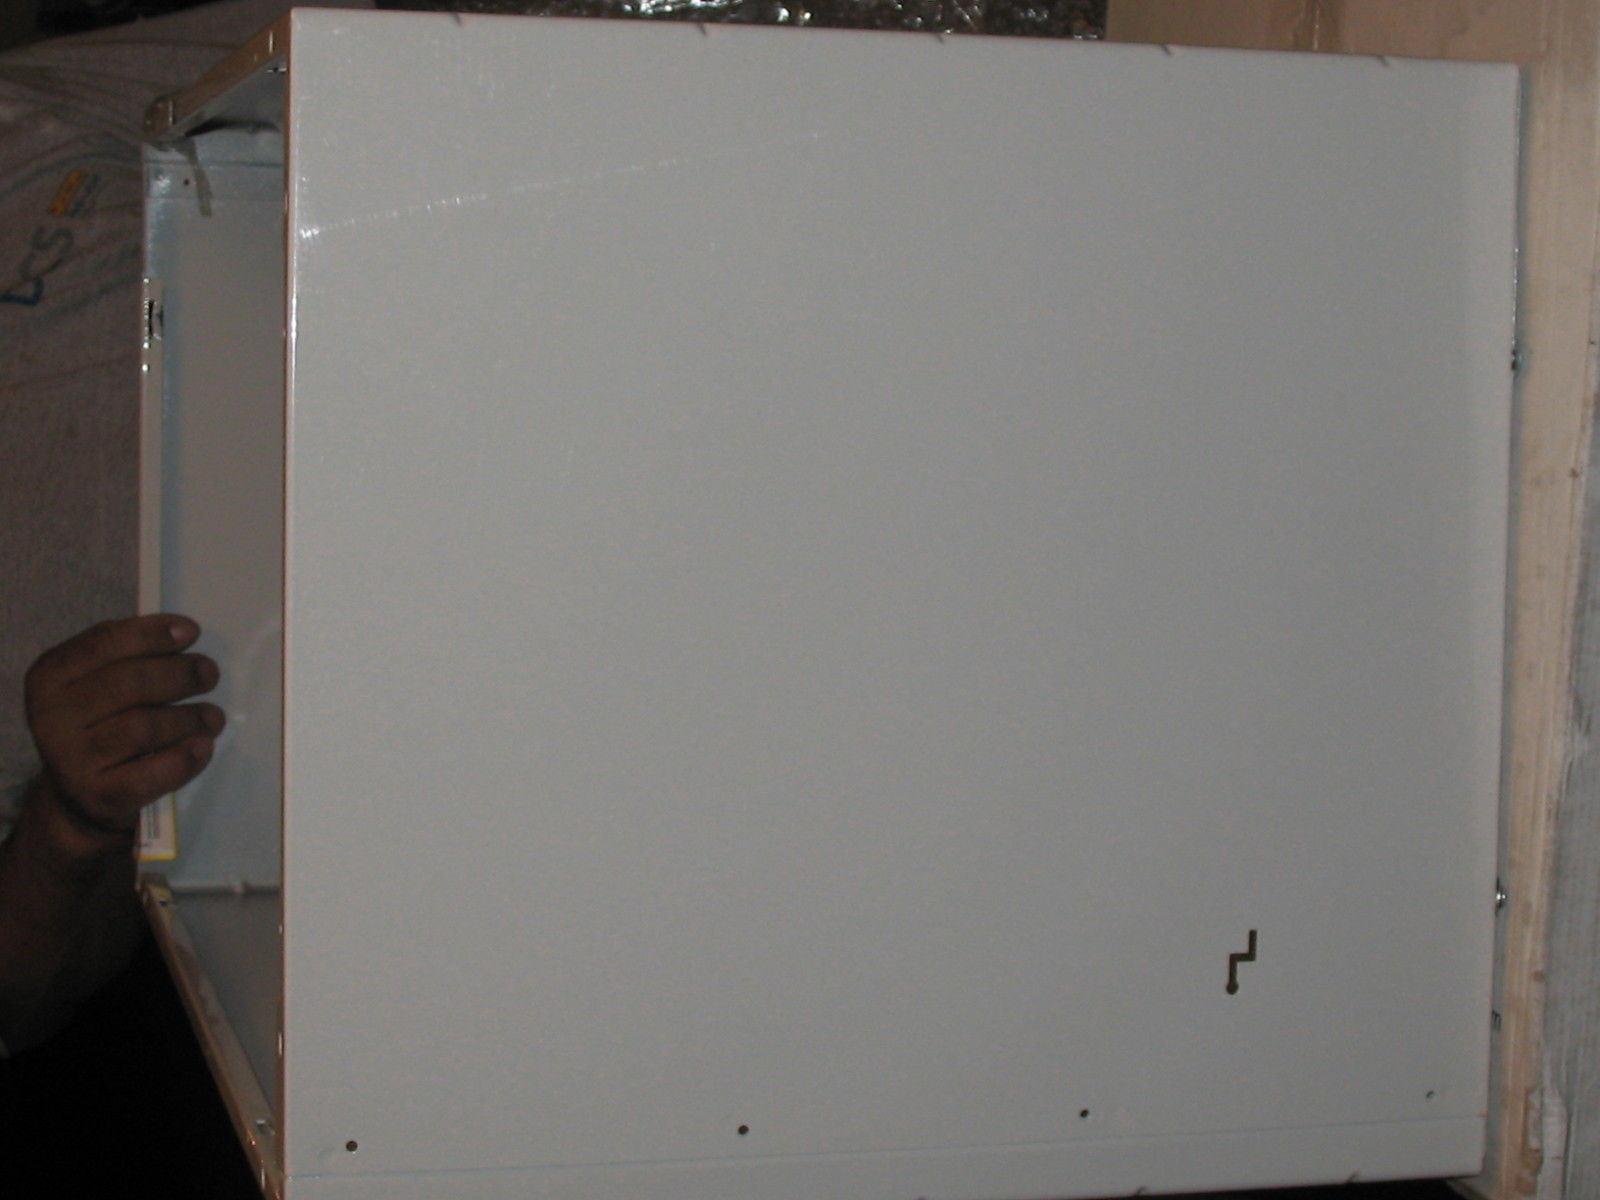 #5E4D40 LG Through The Wall Sleeve For Room Air Conditioner  Best 10603 Air Conditioner Wall Sleeve photos with 1600x1200 px on helpvideos.info - Air Conditioners, Air Coolers and more